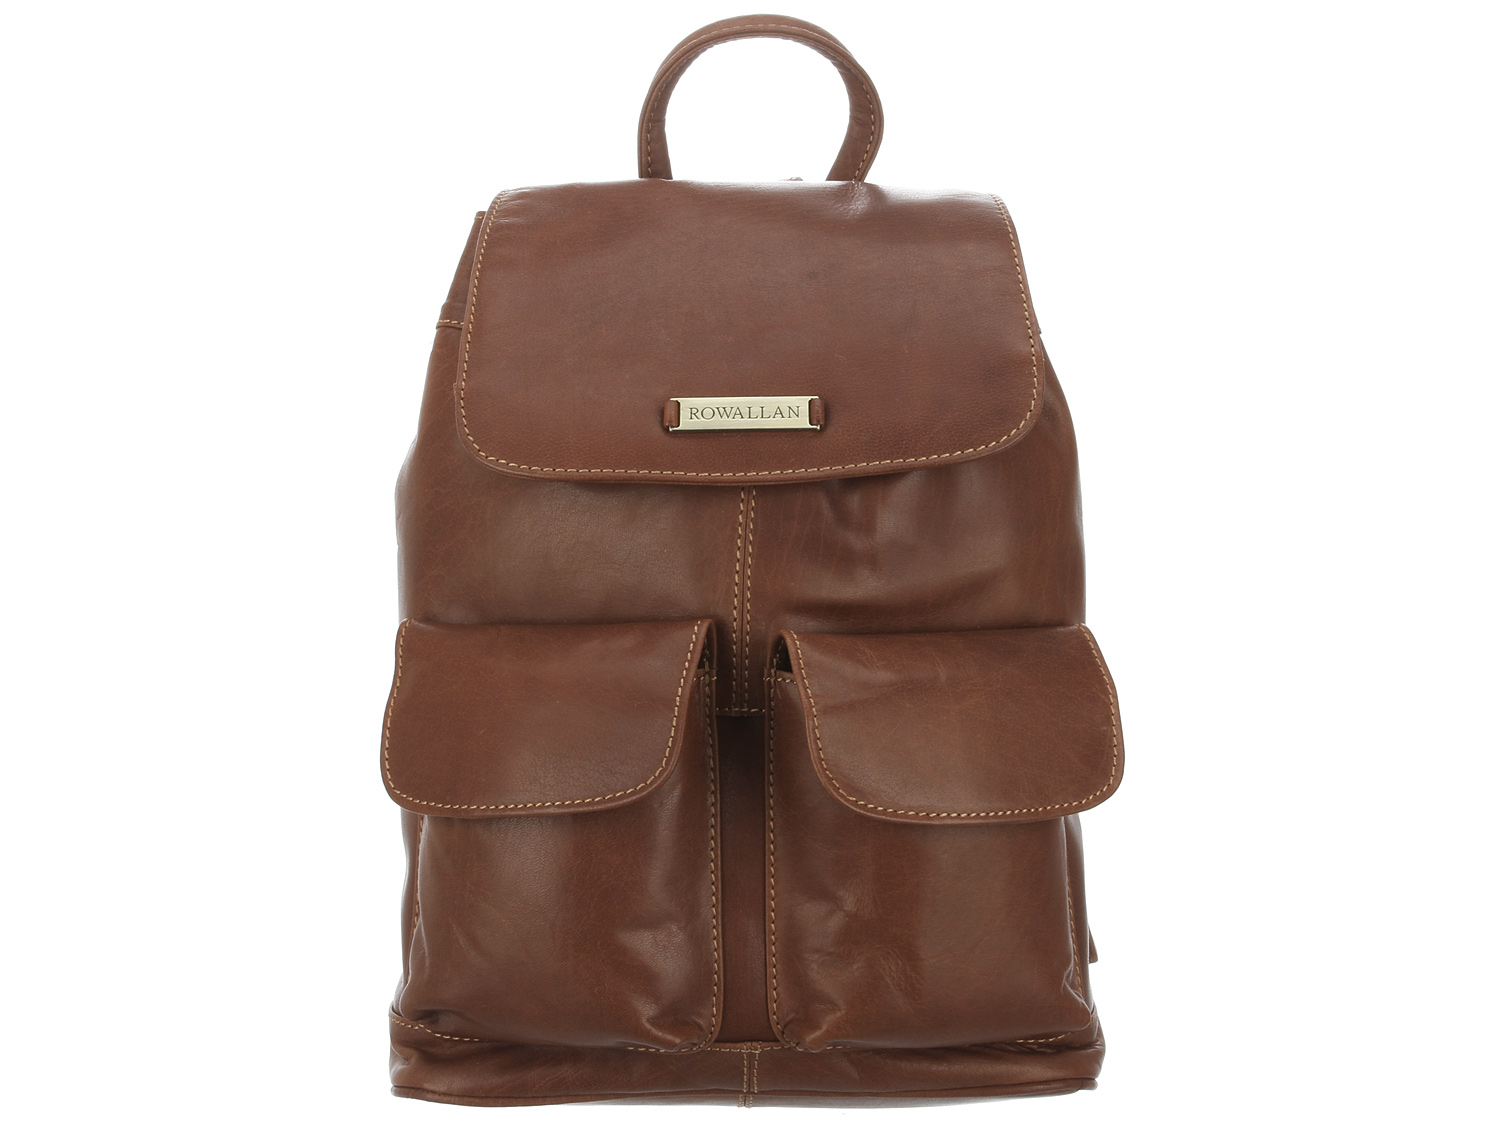 Rowallan - Scotland 'Loreto' Brandy Leather Small Backpack 31-7747-BRANDY | pureluxuries.com